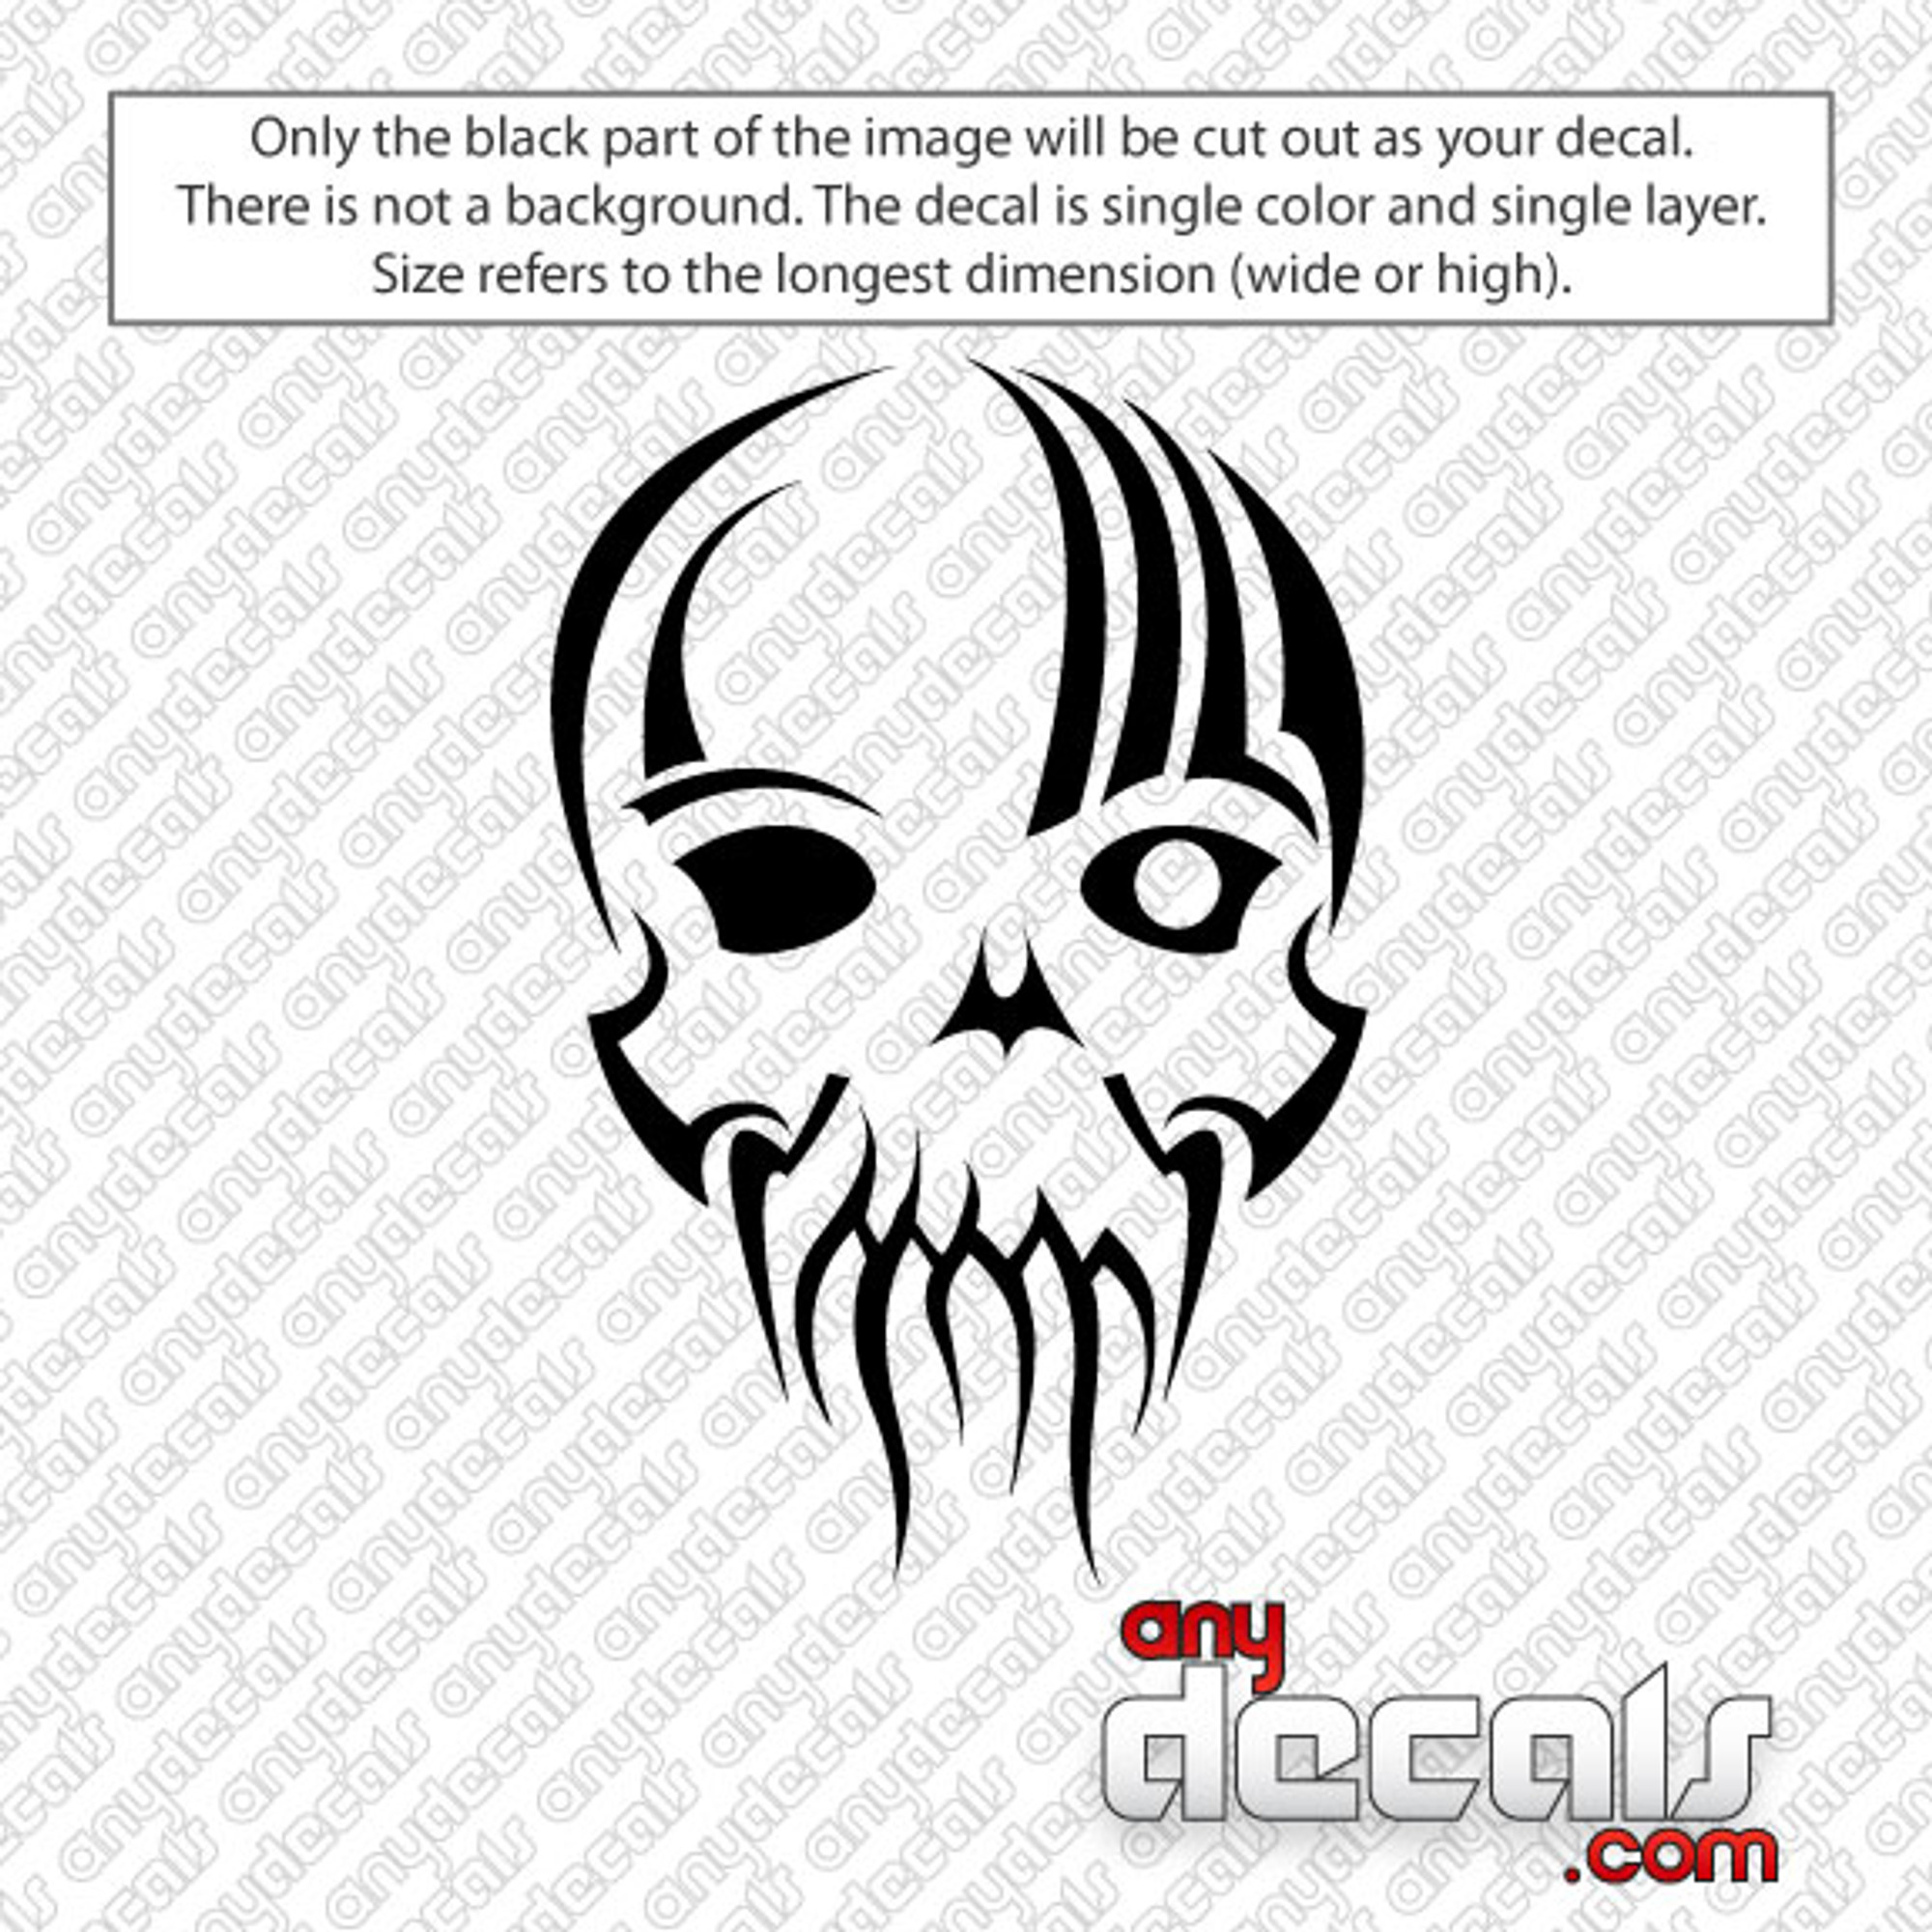 Car Decals Car Stickers One Eye Skull Car Decal